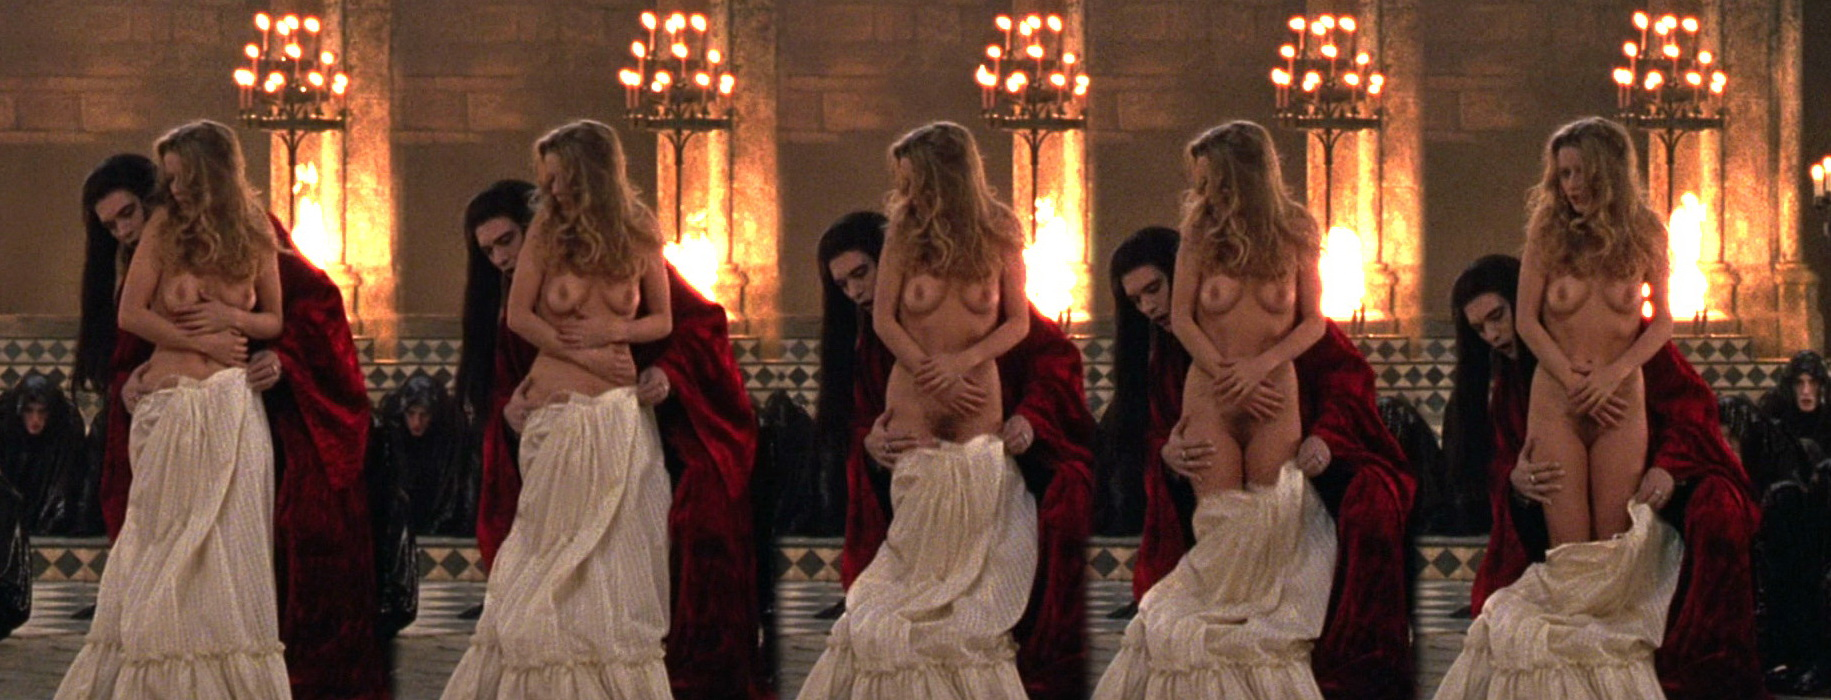 Laure Marsac Nude In Interview With The Vampire Photo